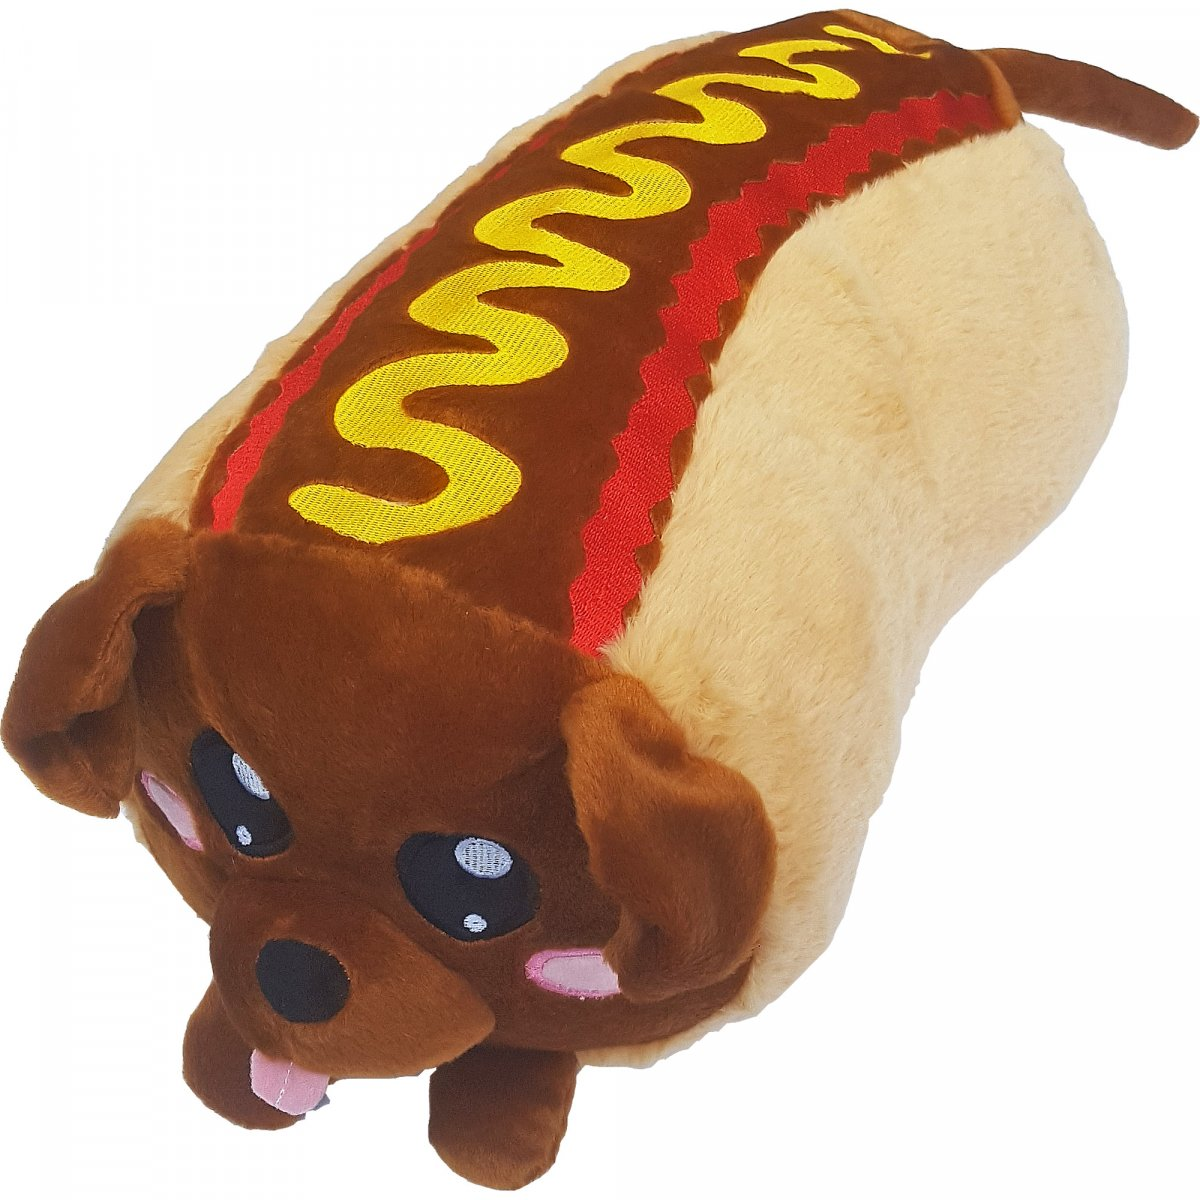 LeKoopa Merch Hotdog Plush Toy Fastfood